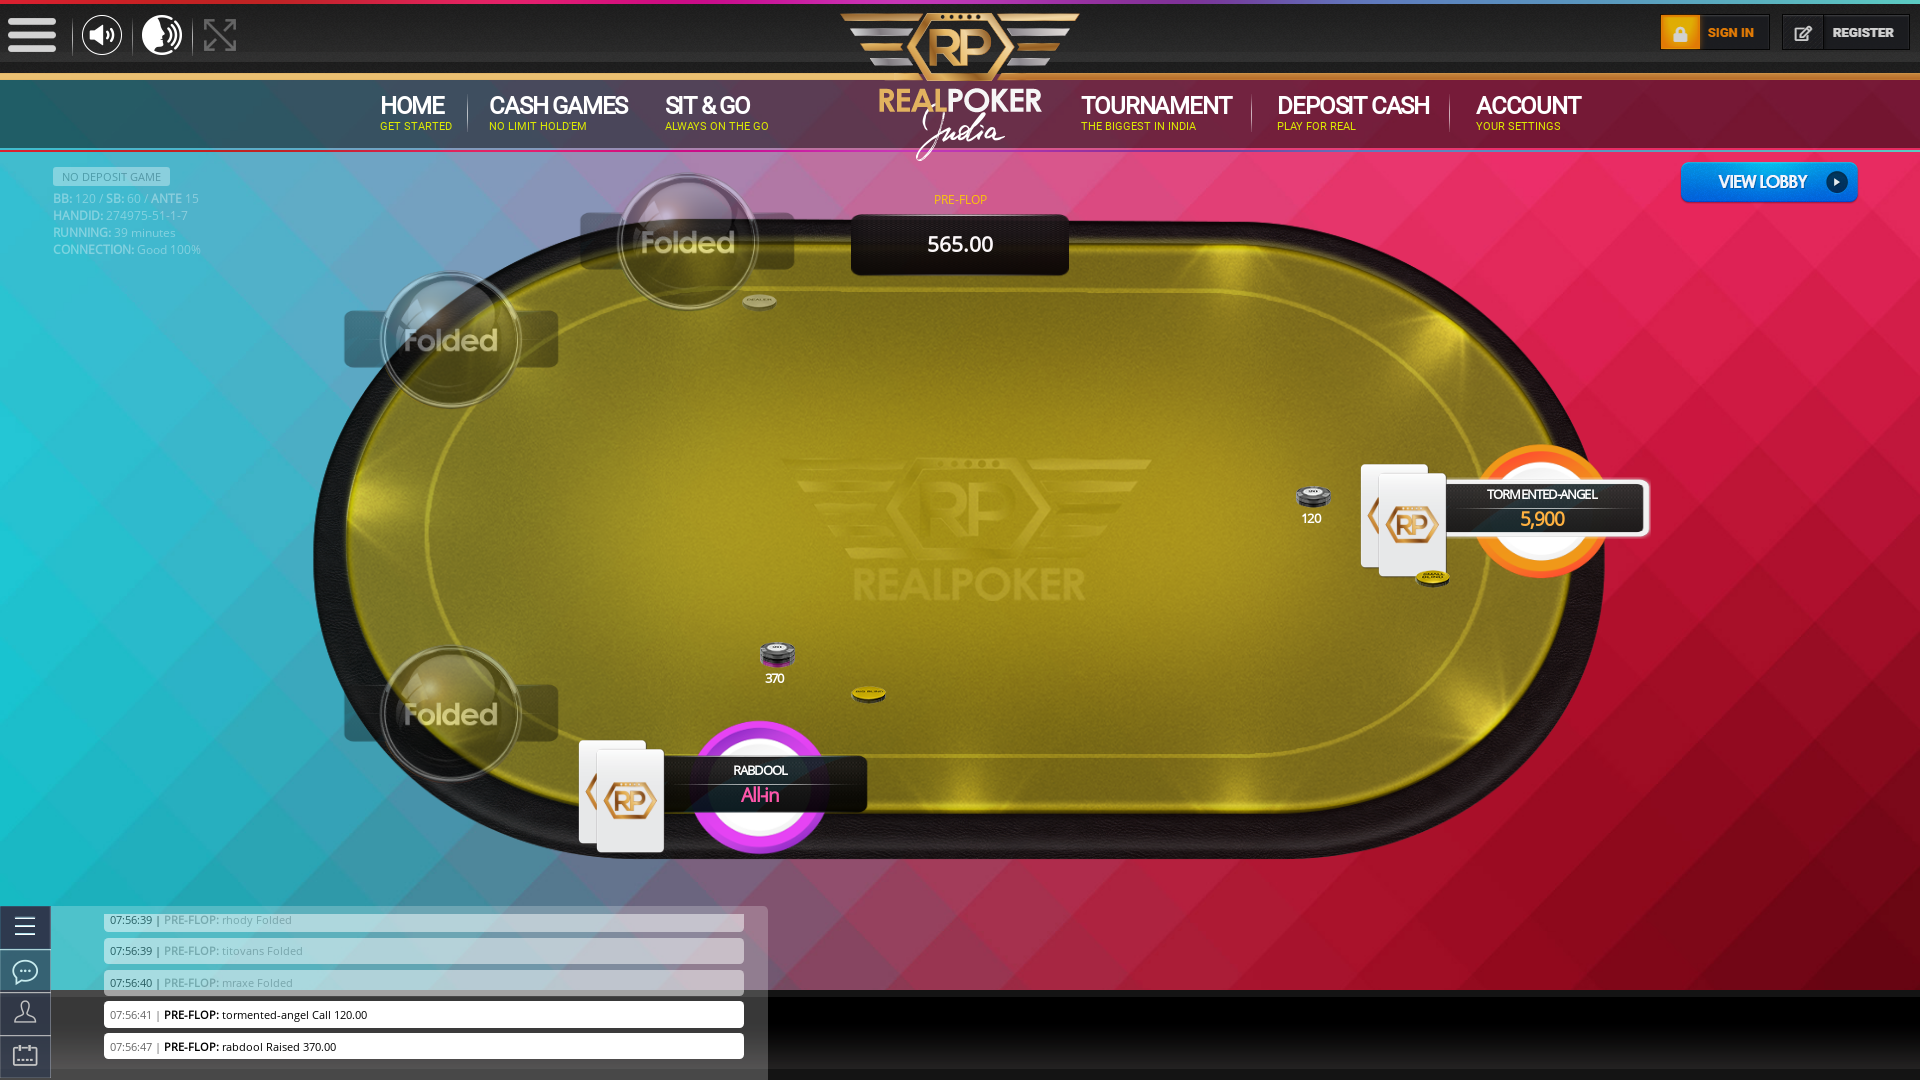 Vasant Vihar, New Delhi online poker game on a 10 player table in the 39th minute of the game